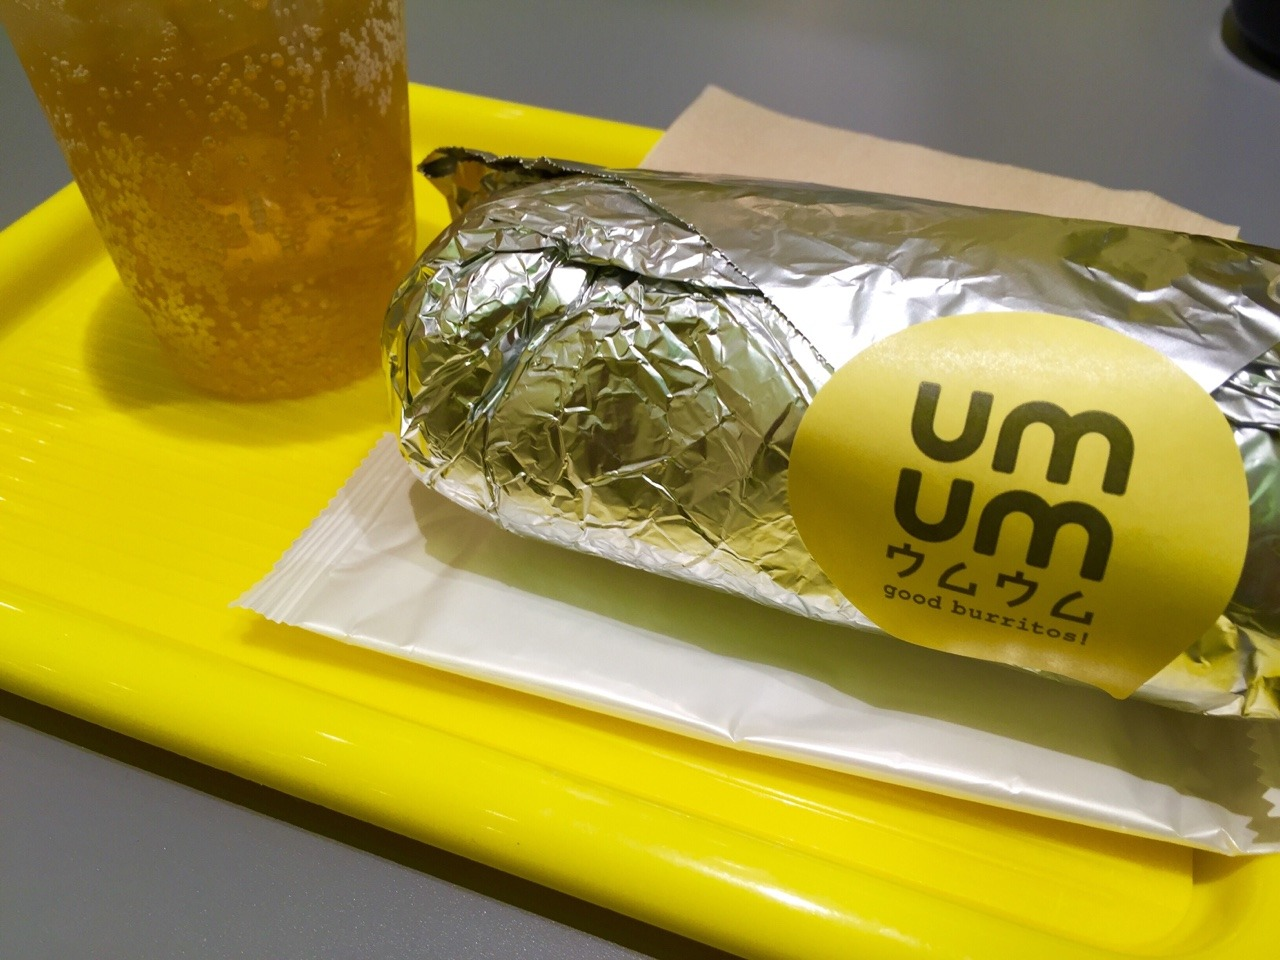 umum good burritos! @丸の内